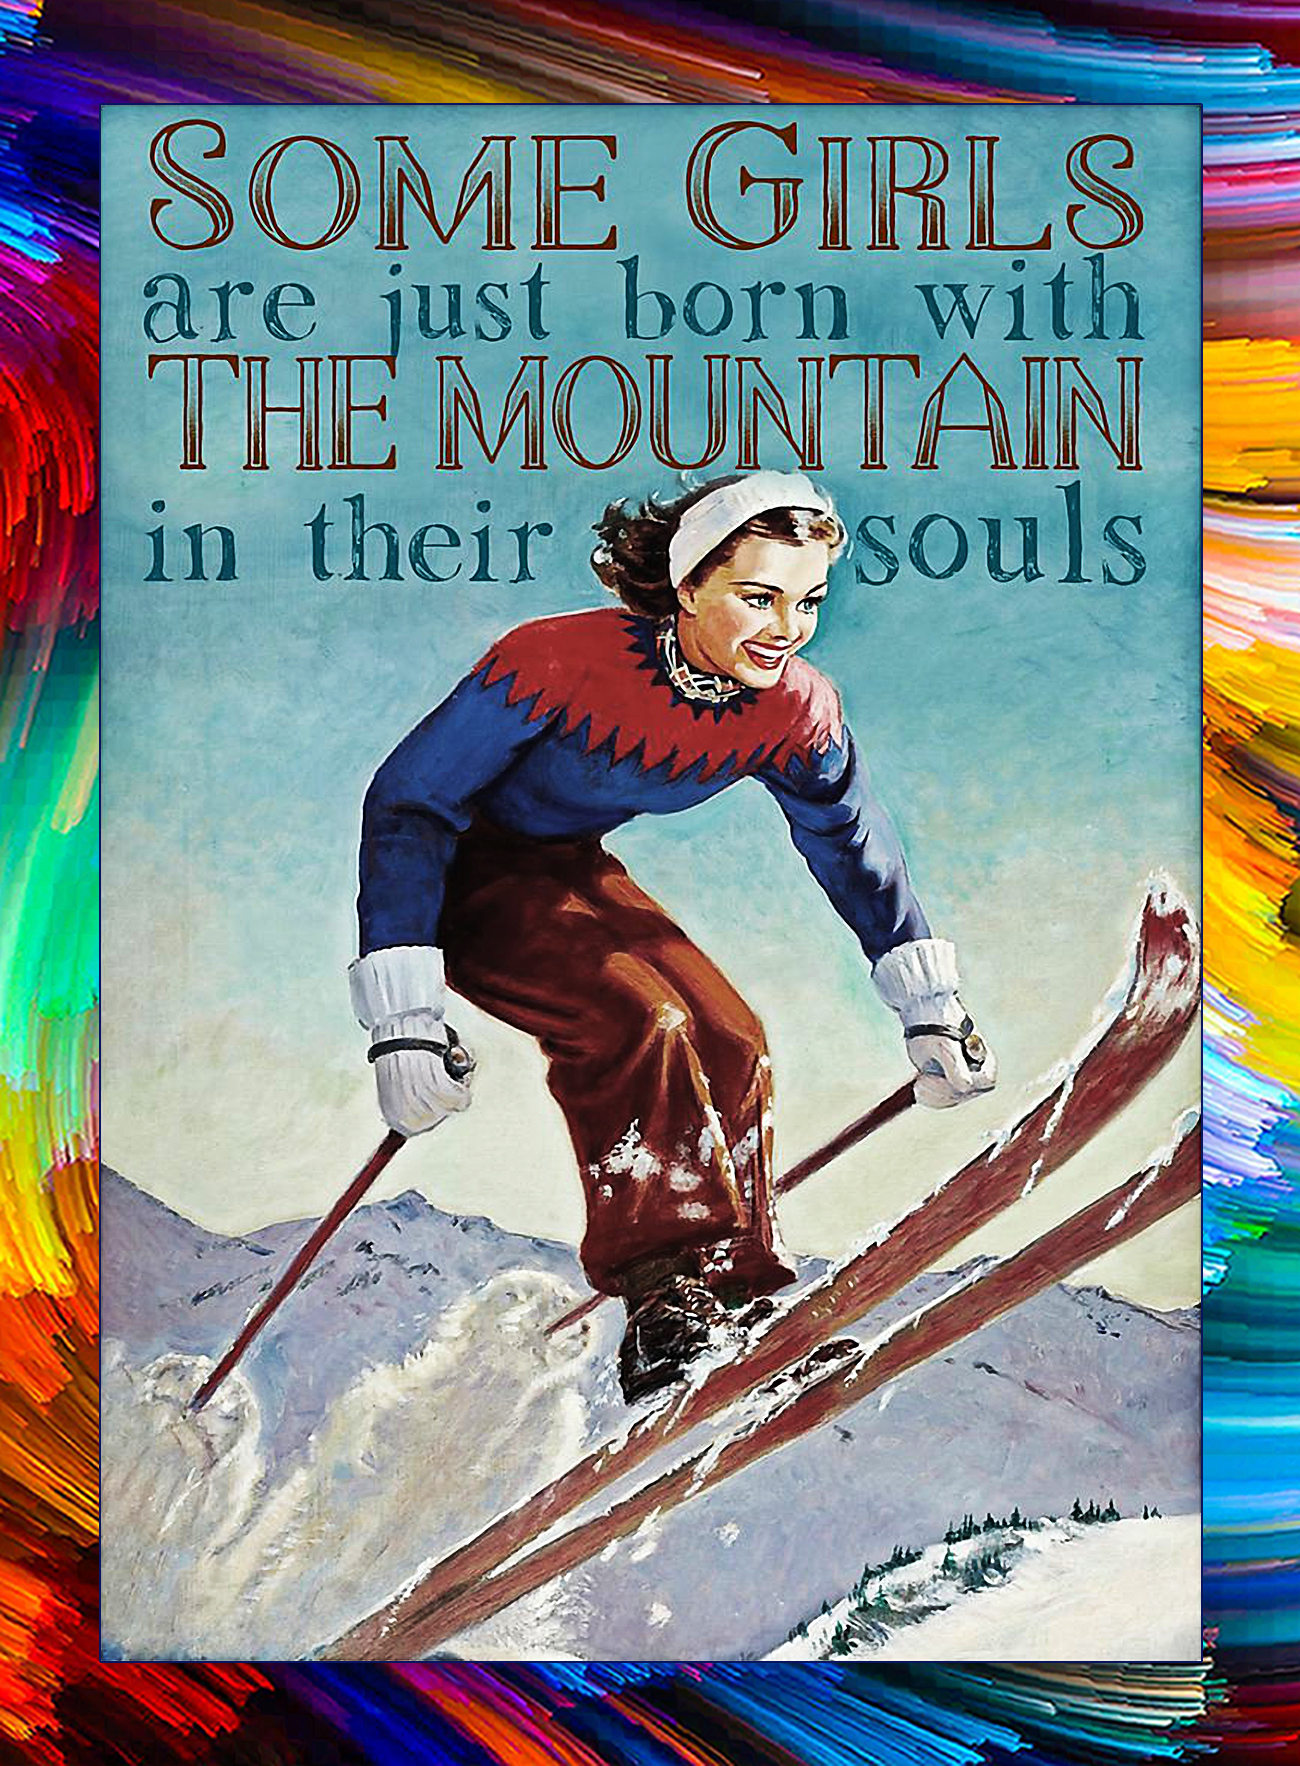 Skiing some girls are just born with the mountain poster - A4